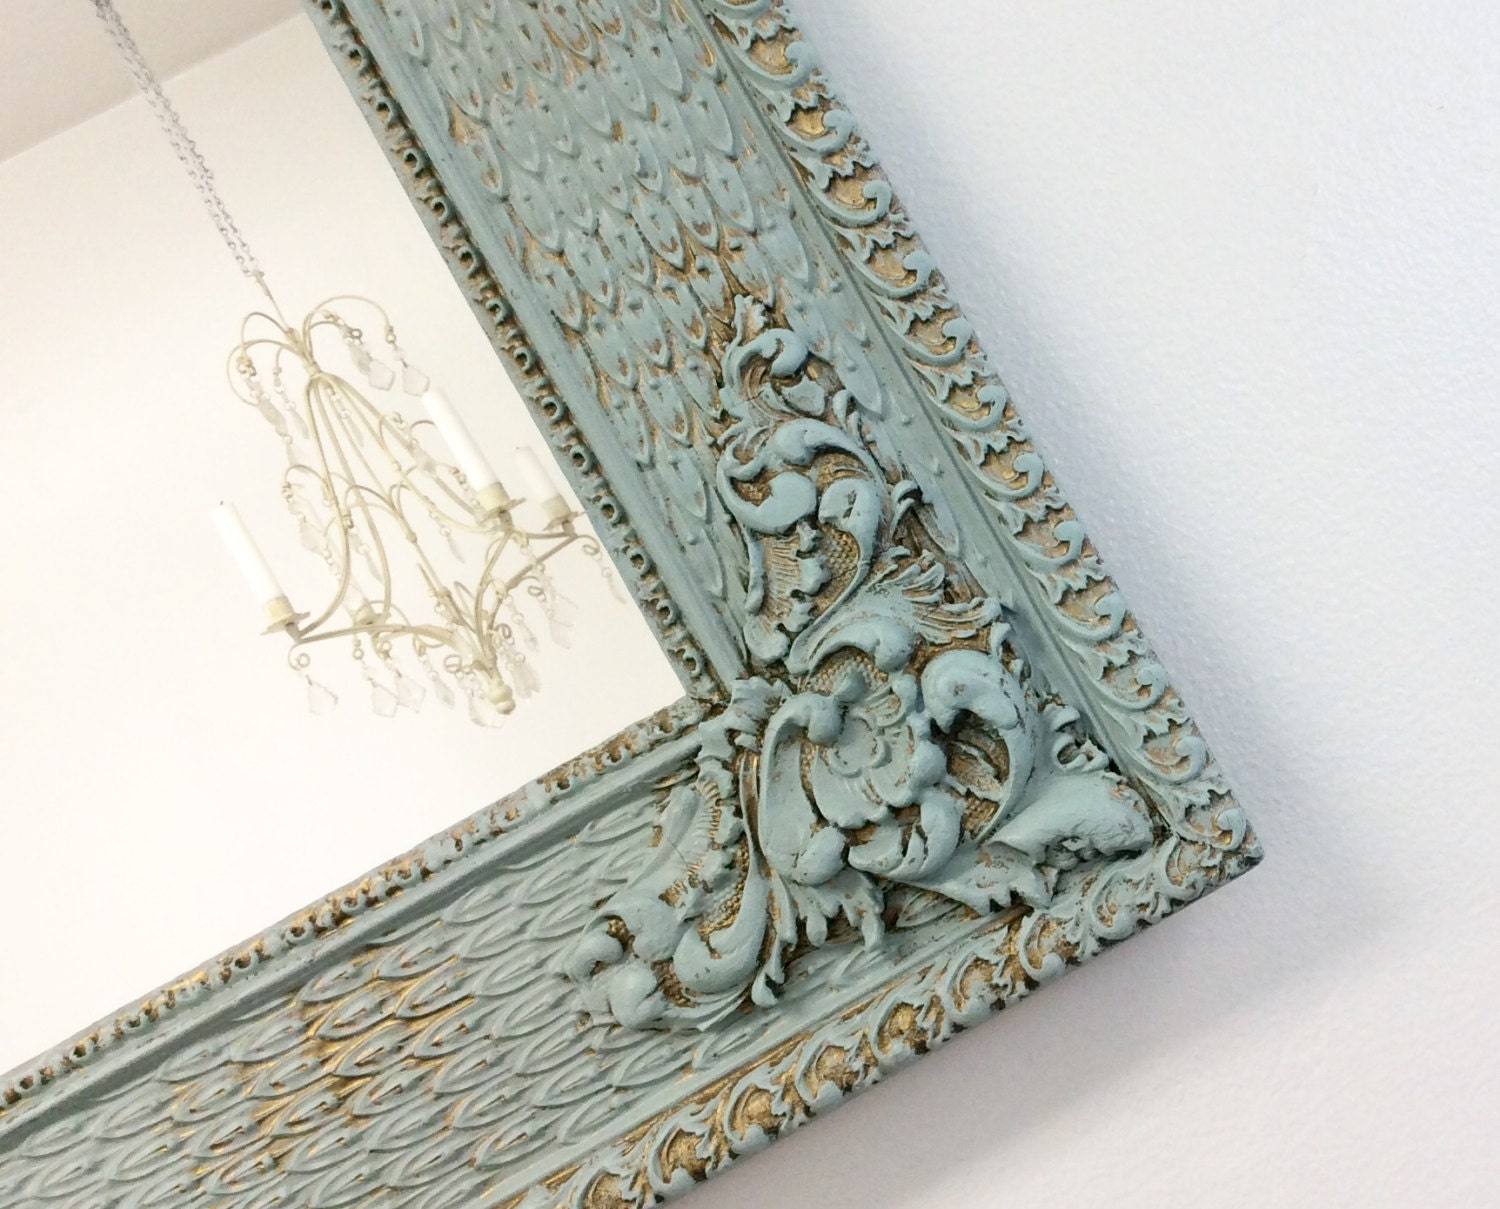 large gold mirrored vanity tray gold filigree shabby chic or